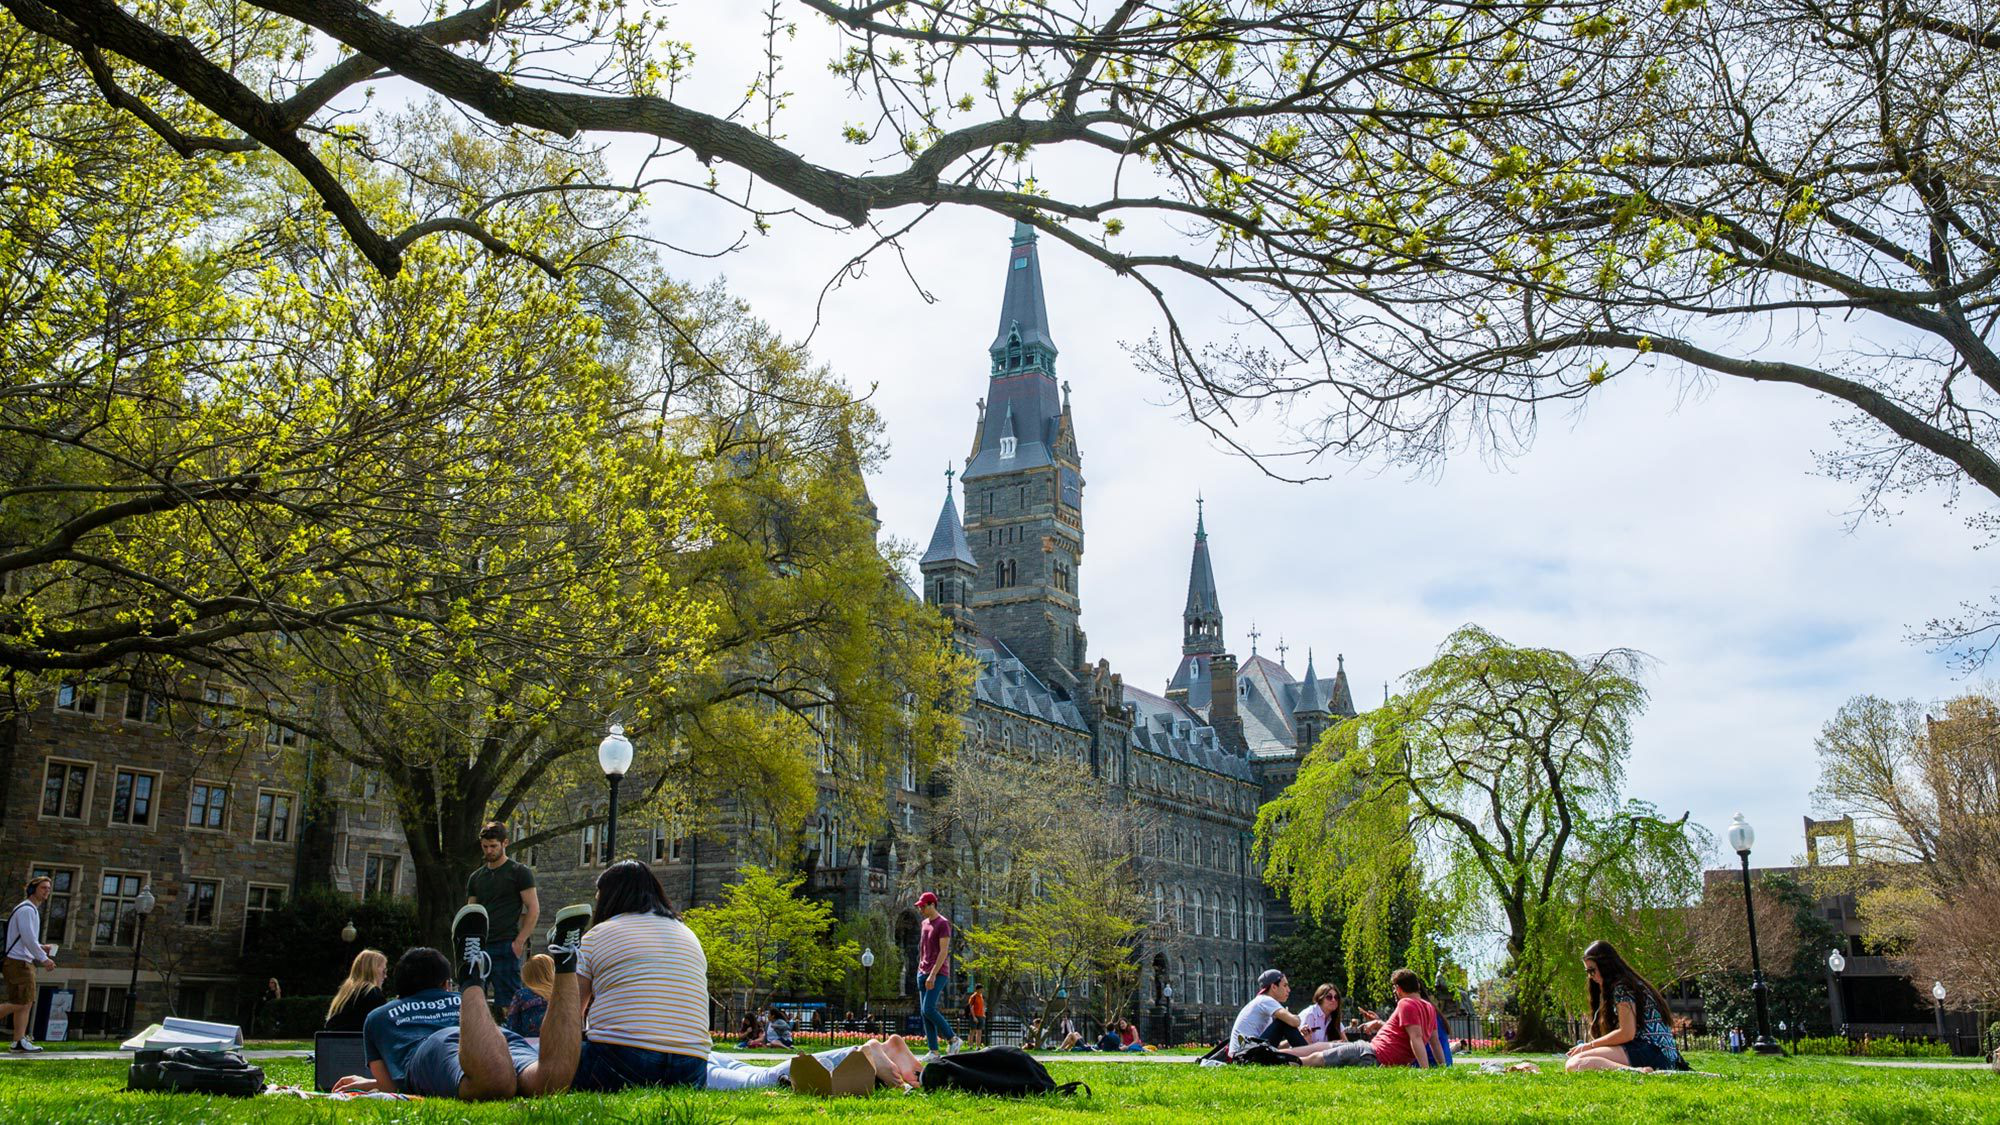 学生们 sit on a lush green lawn with Healy Hall standing tall in the background.